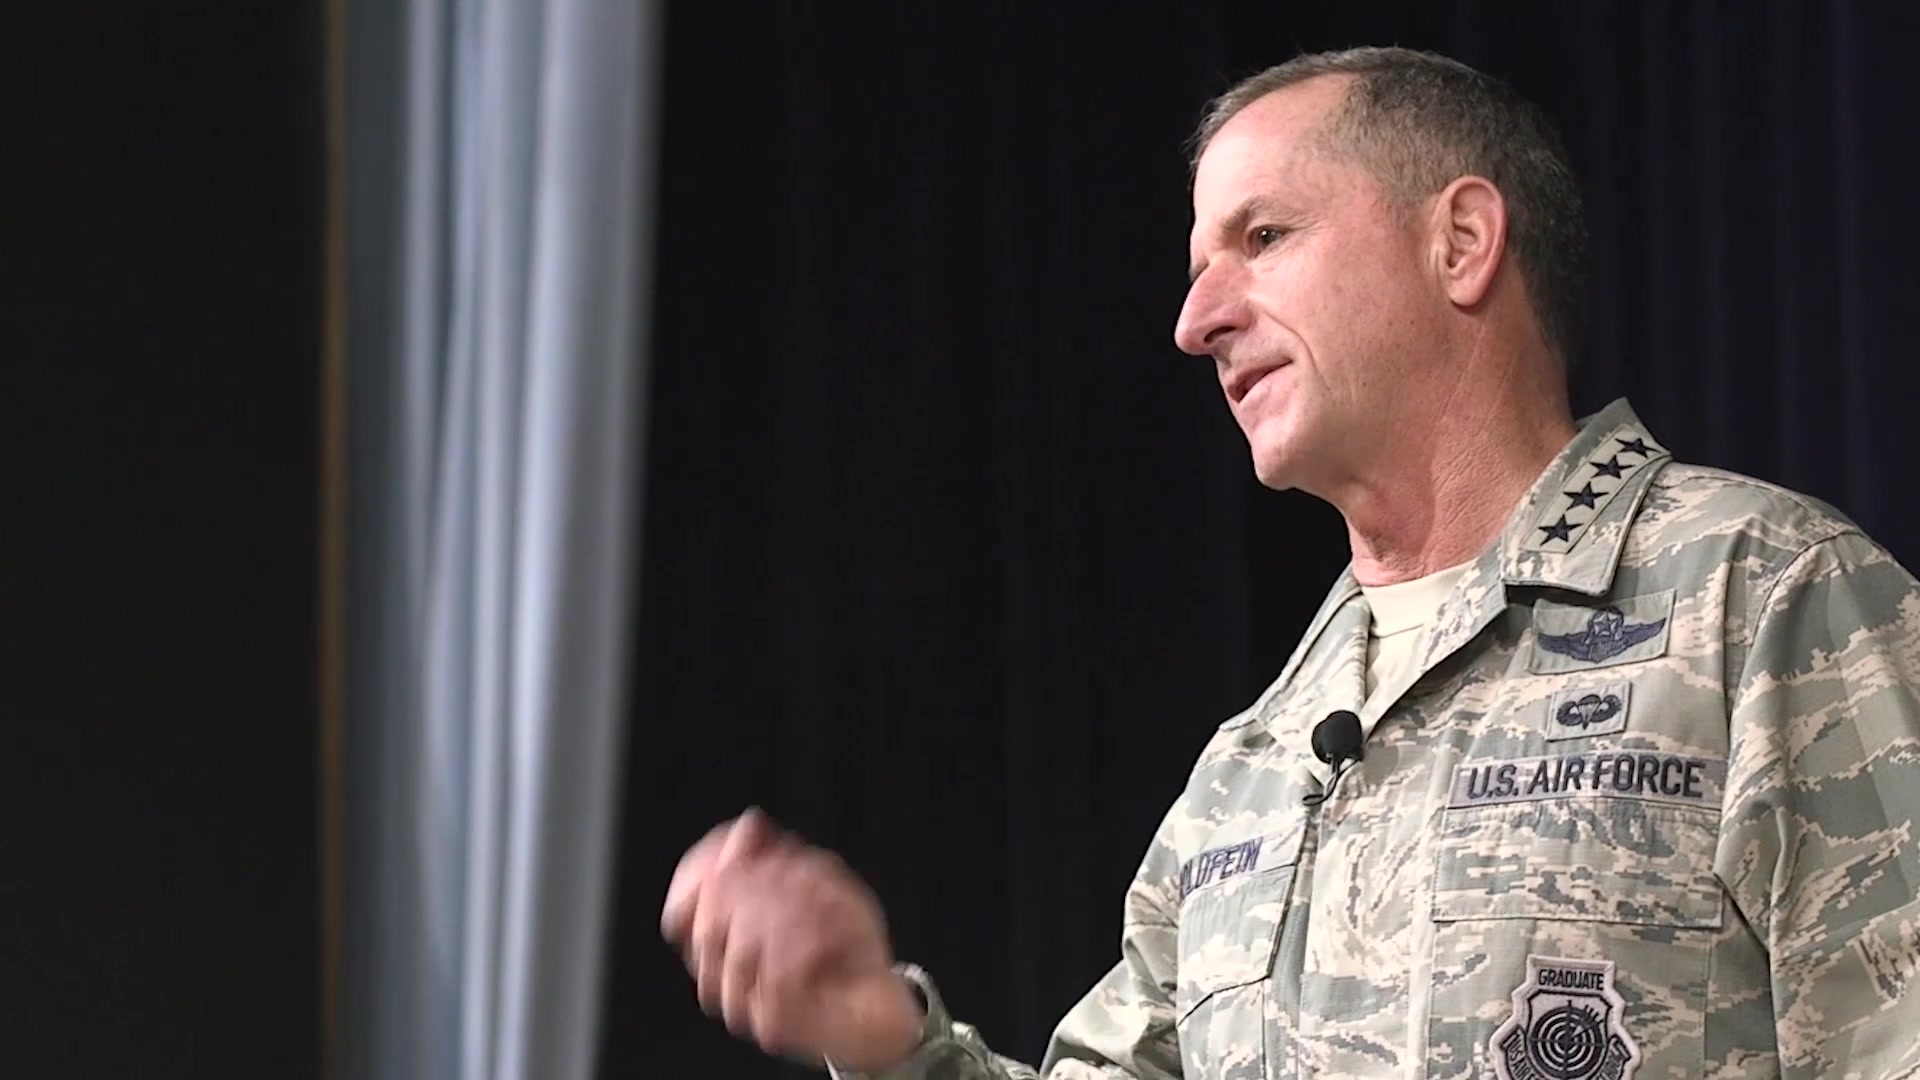 Air Force Chief of Staff Gen. David L. Goldfein speaks to Air Command and Staff College students about his expectations for the future of the force on Aug. 24, 2018 at Maxwell Air Force Base, Alabama.